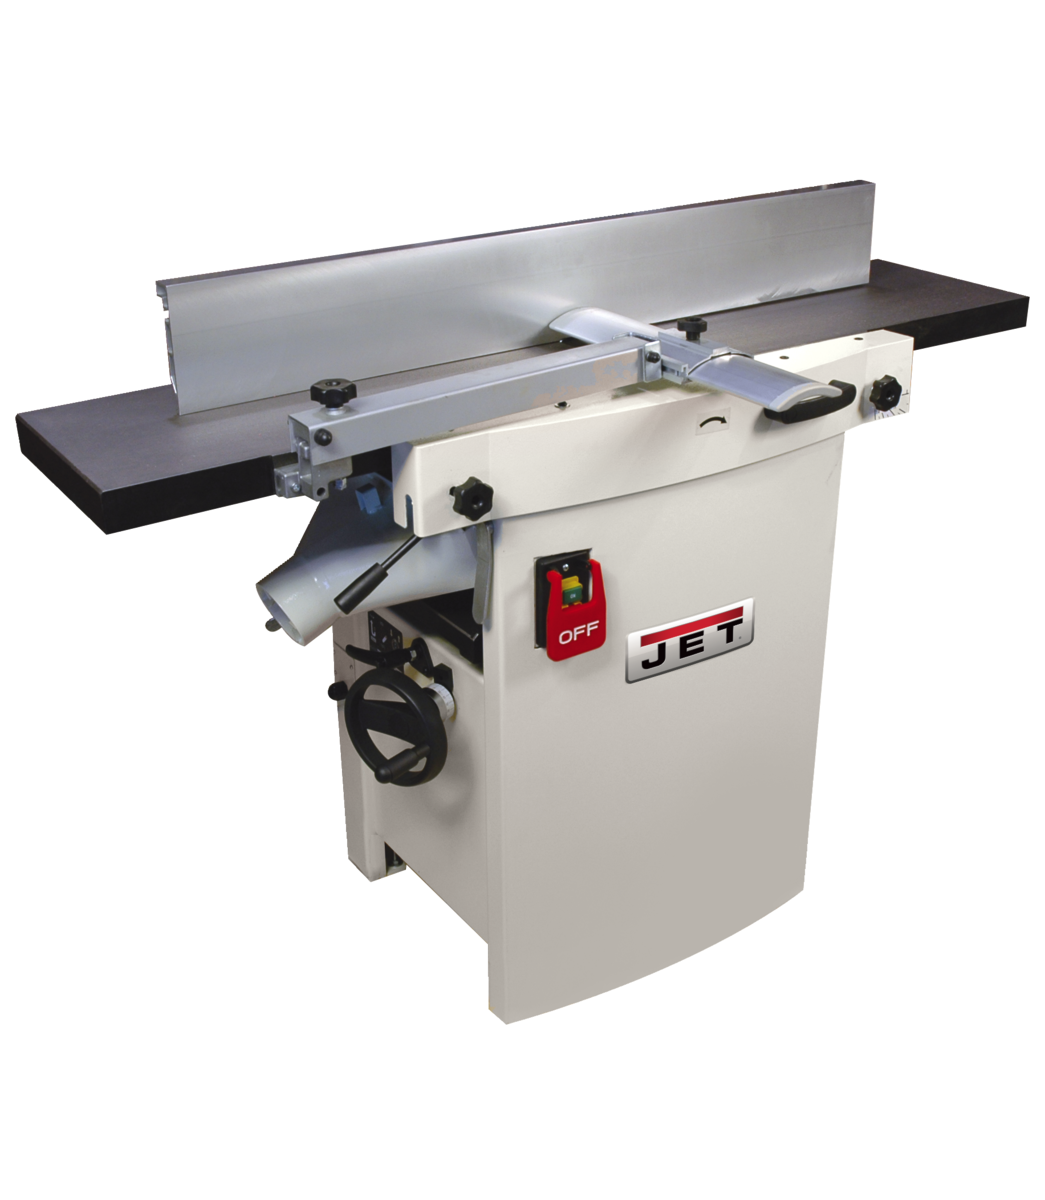 """JJP-12HH 12"""" Planer /Jointer with Helical Head"""